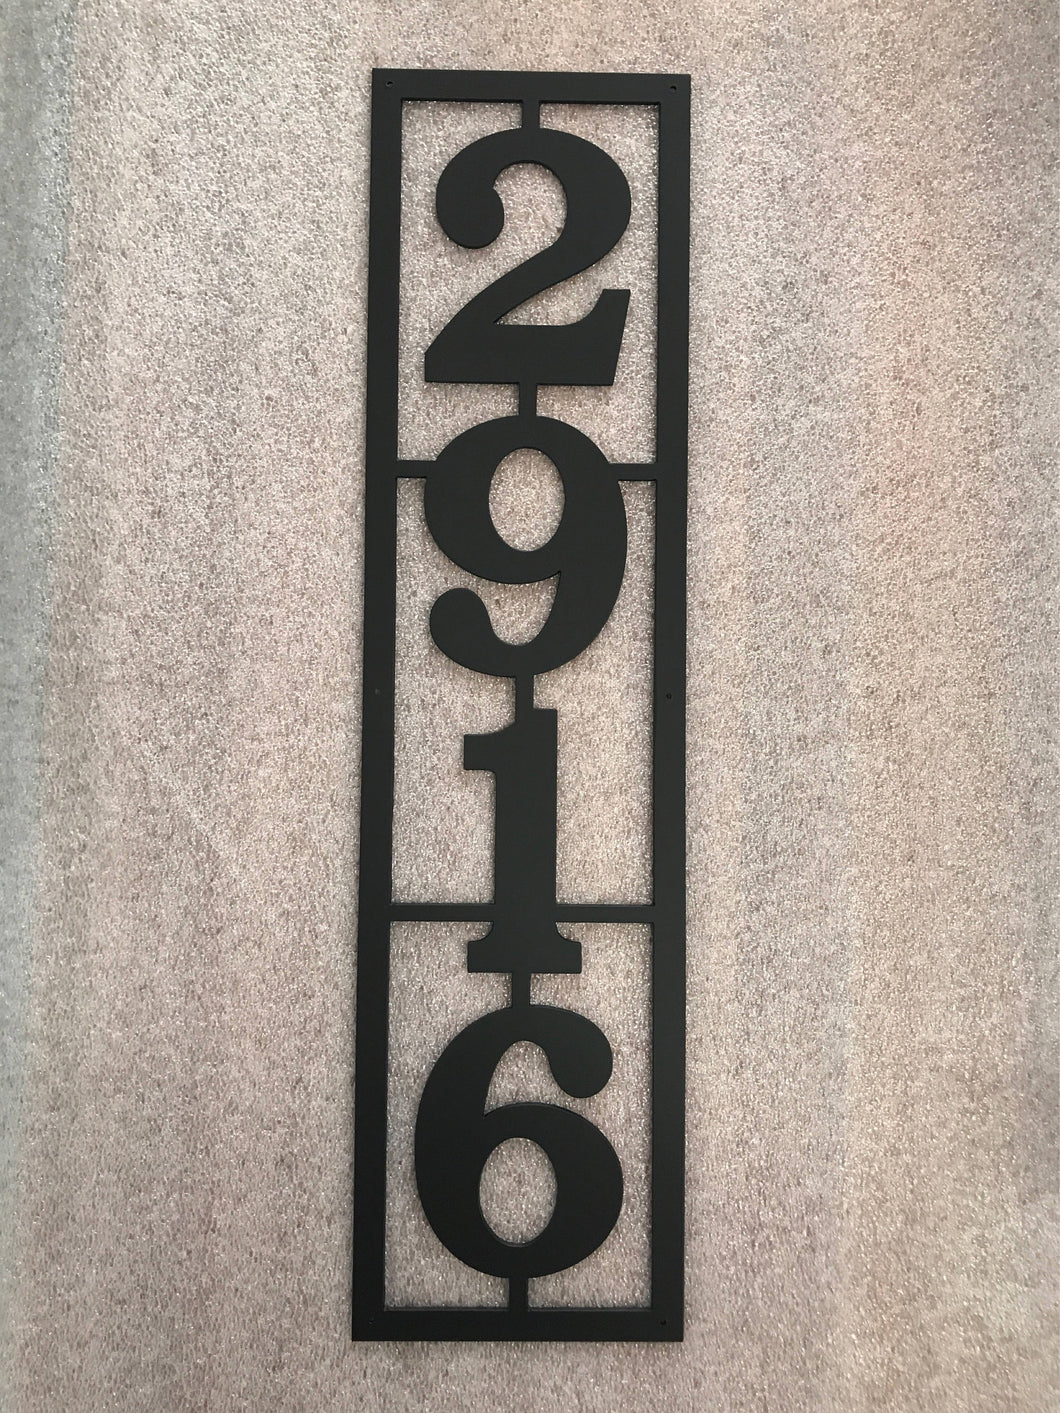 Vertical Metal House Number with 4 Numbers and Border